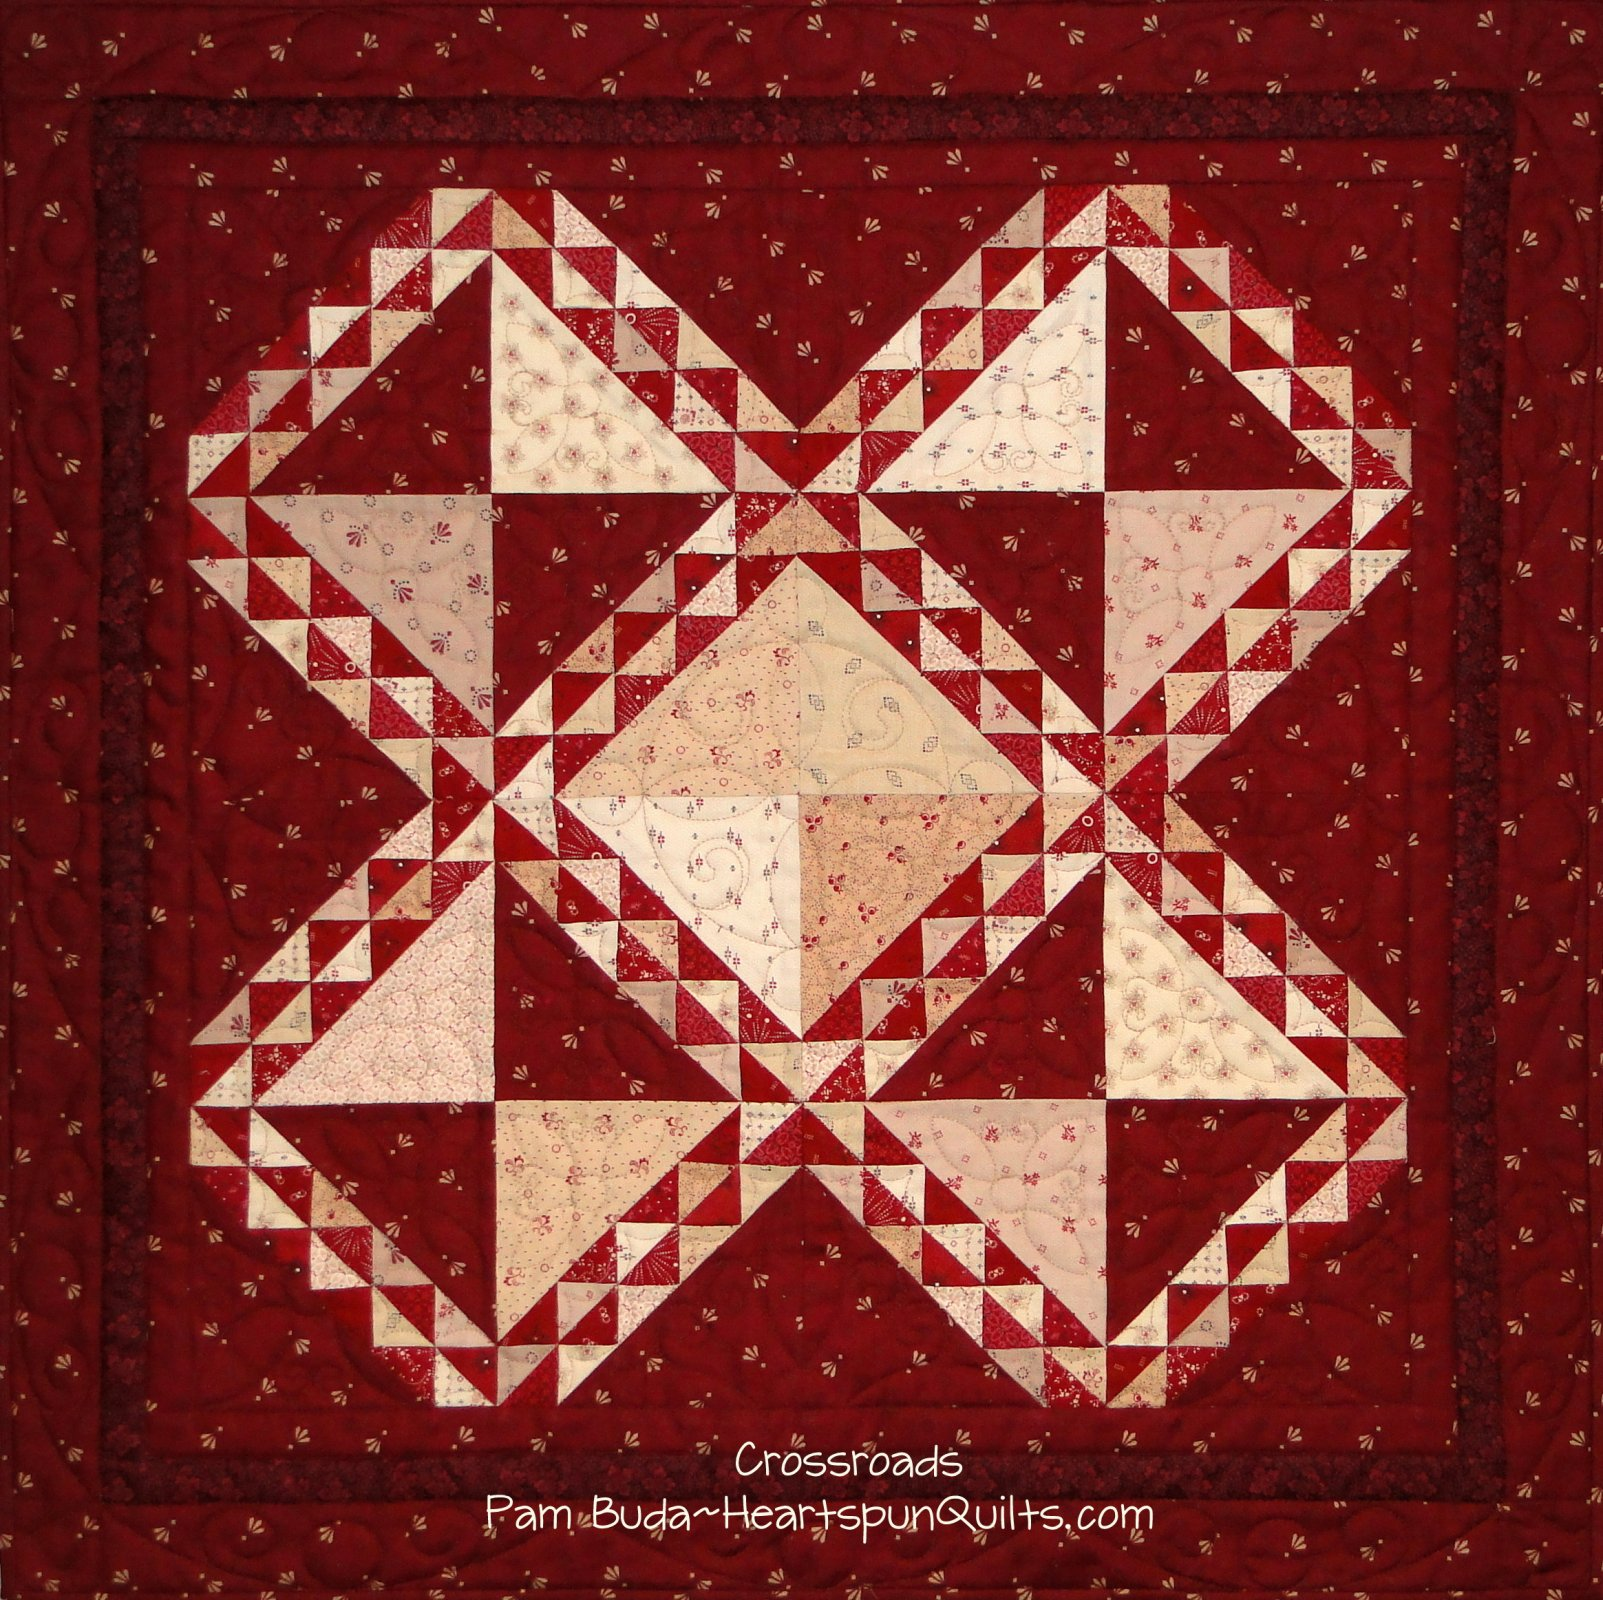 Crossroads ~ Limited Edition Quilt Kit & Pattern ~ Version A